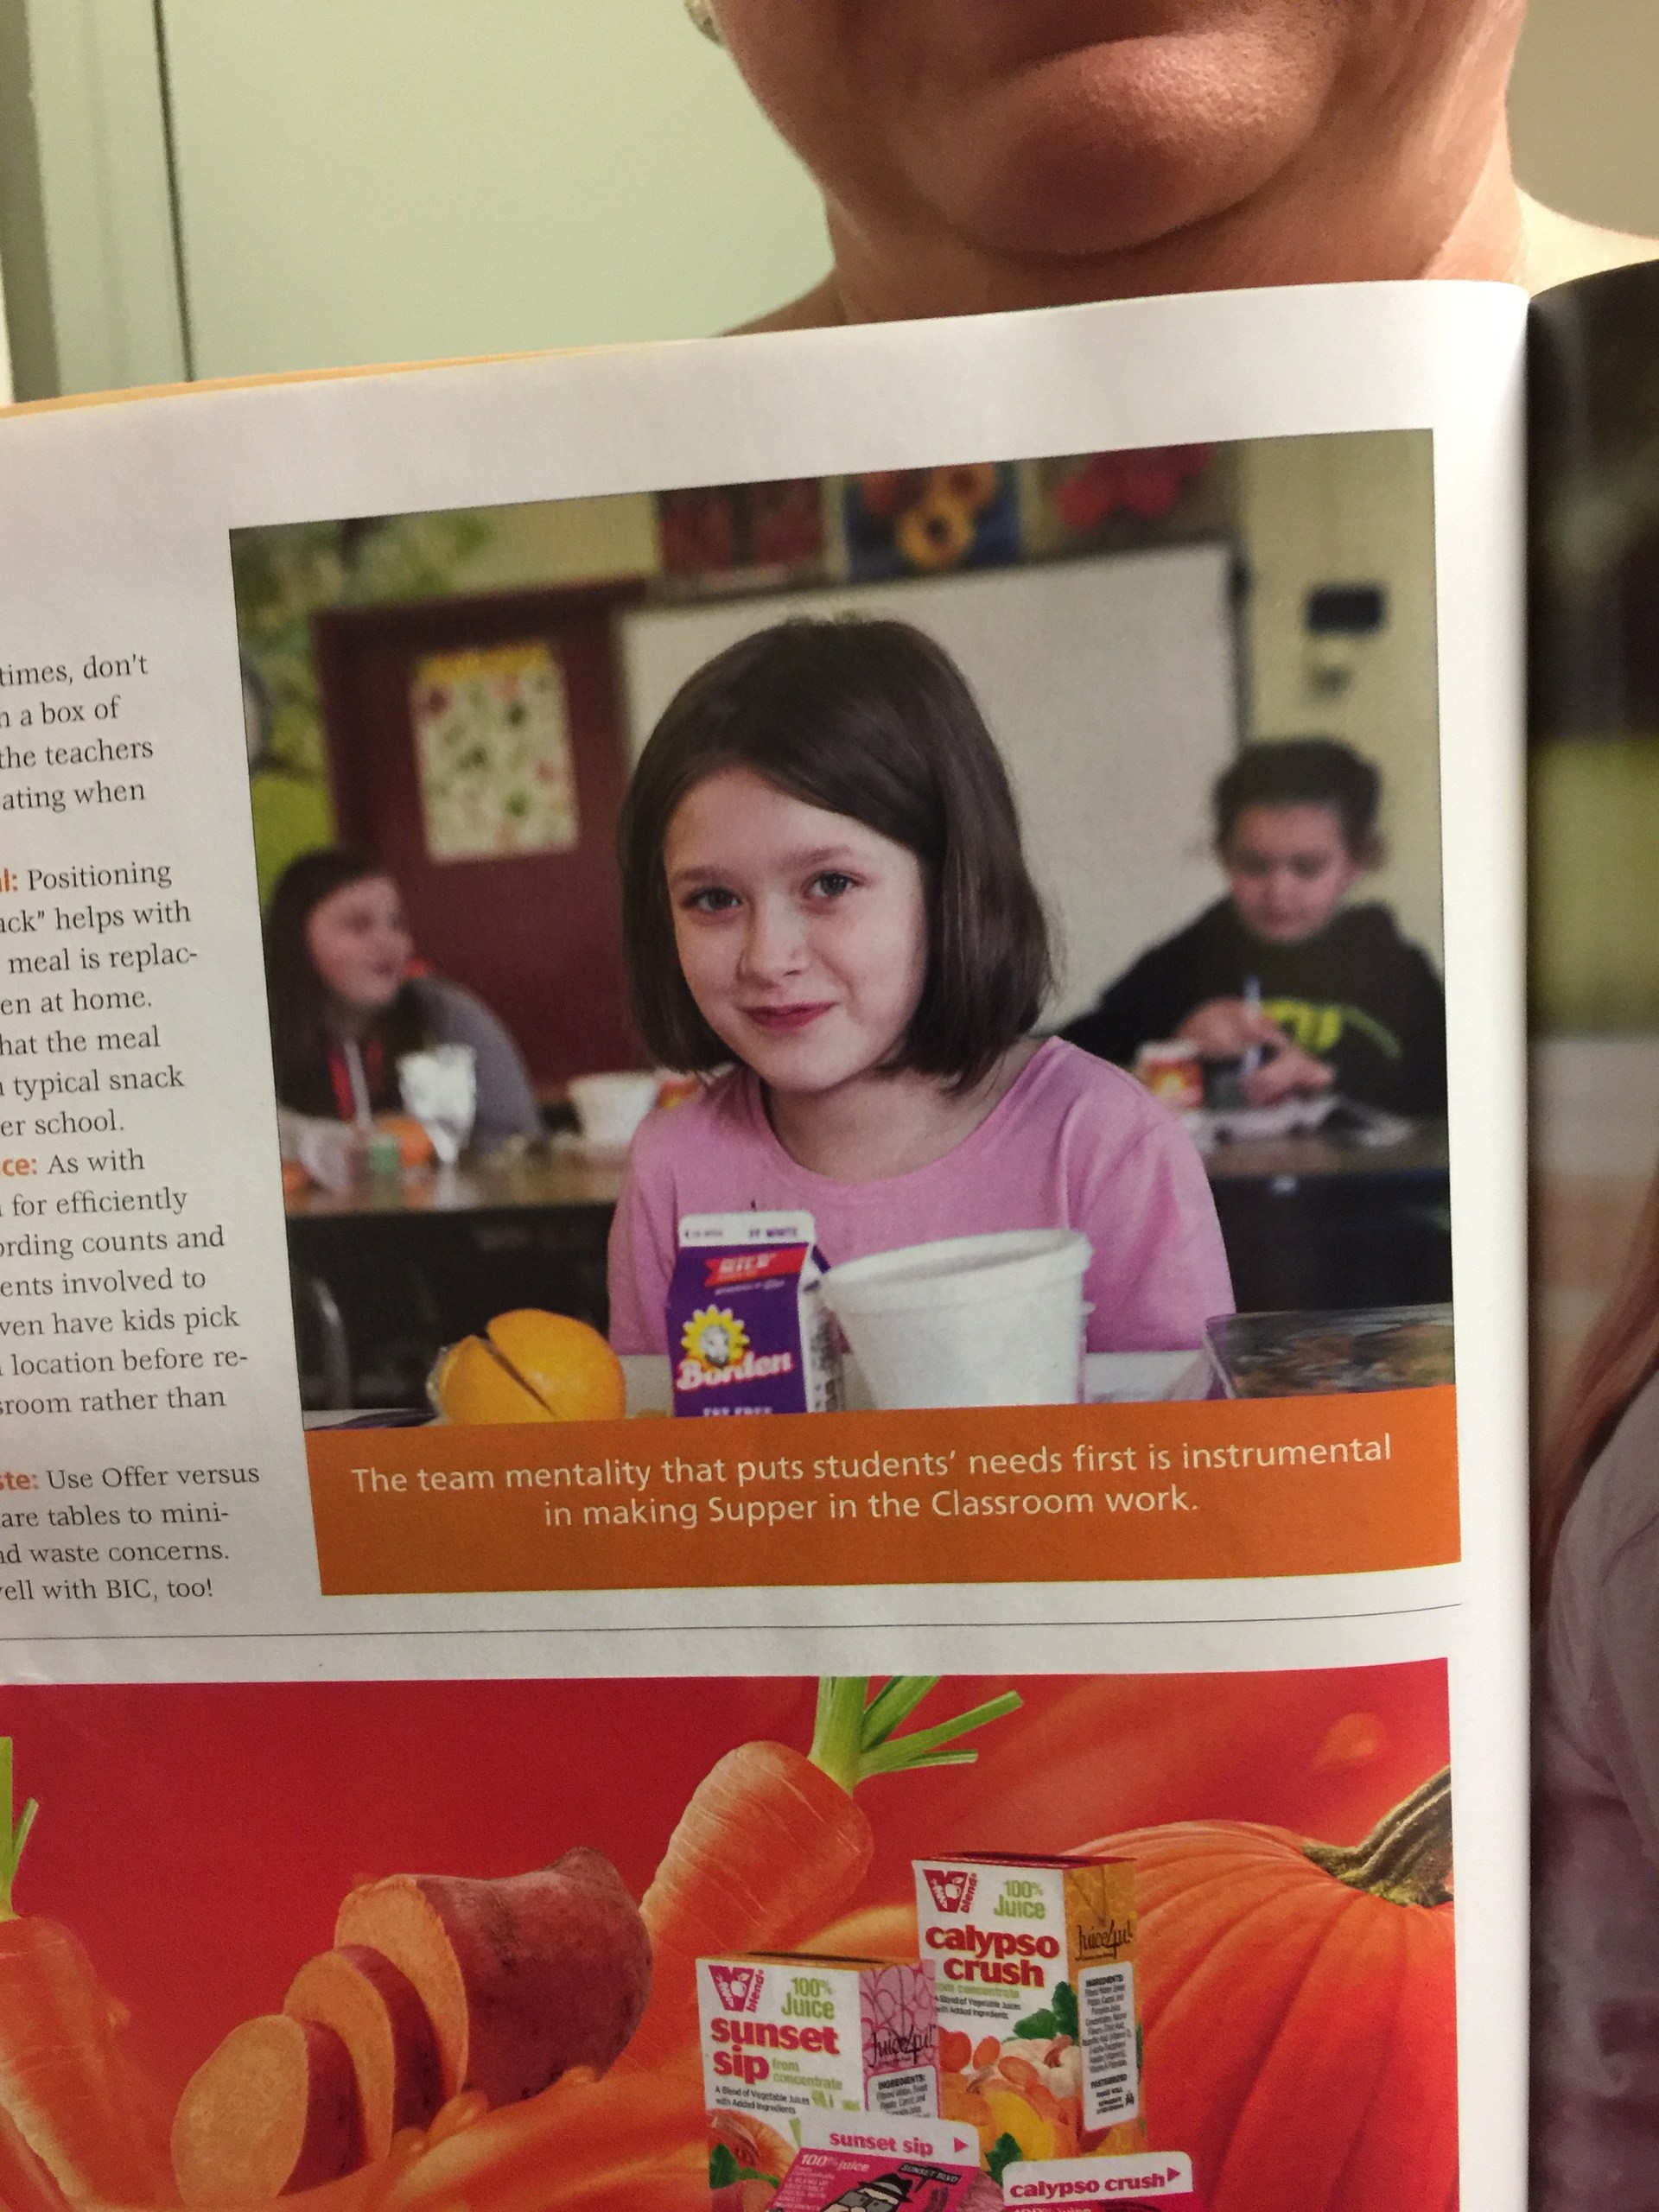 No Kid Hungry article